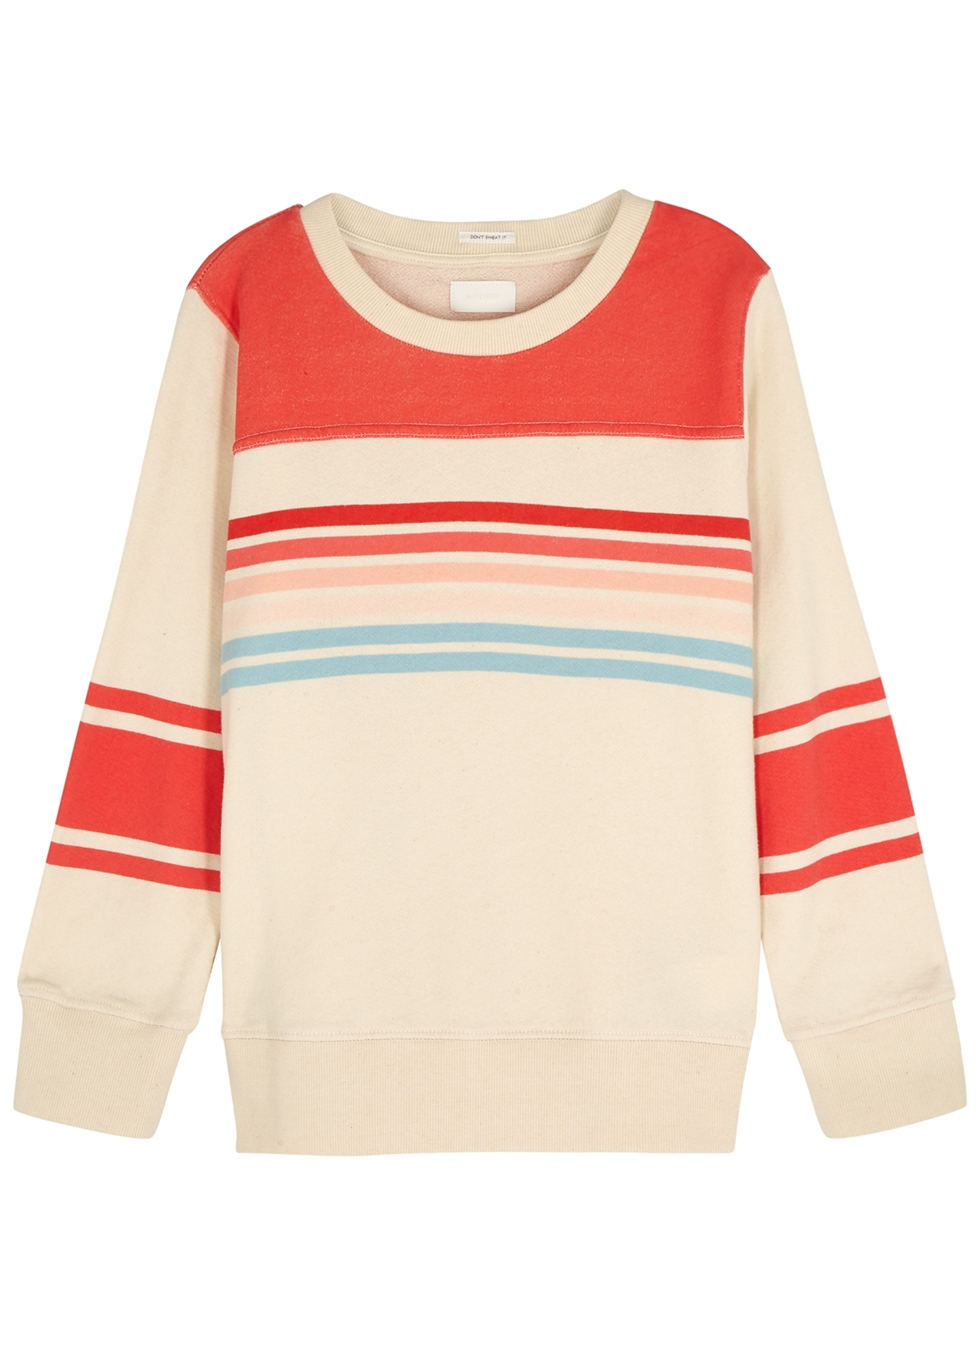 Koozie striped cotton sweatshirt - Mother